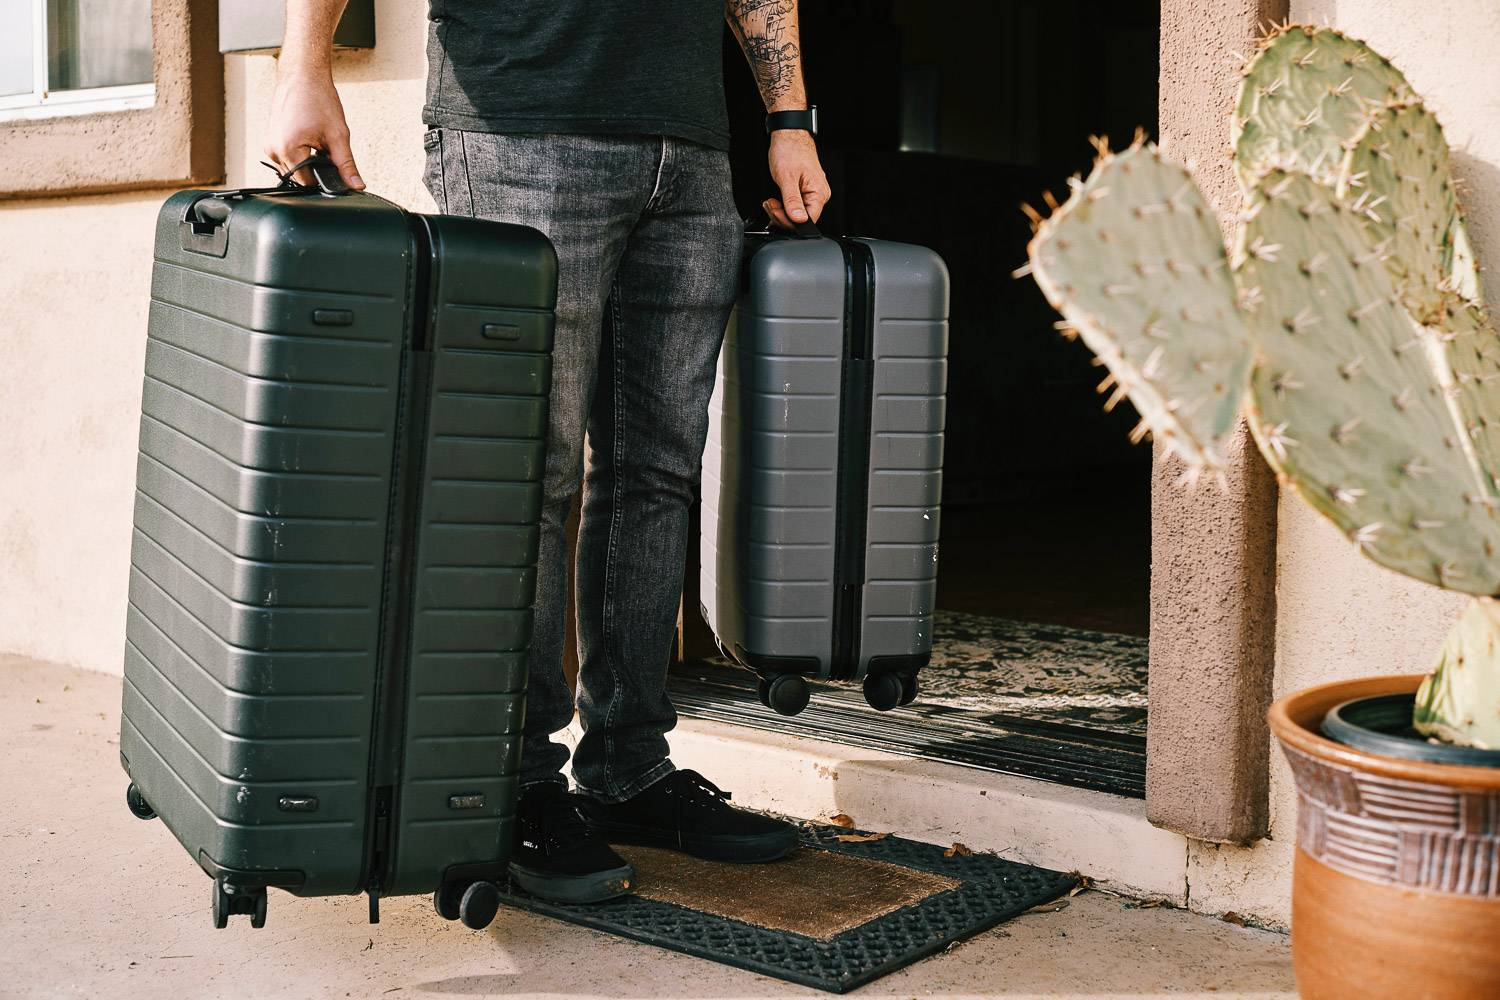 Image of a man carrying two suitcases entering a house